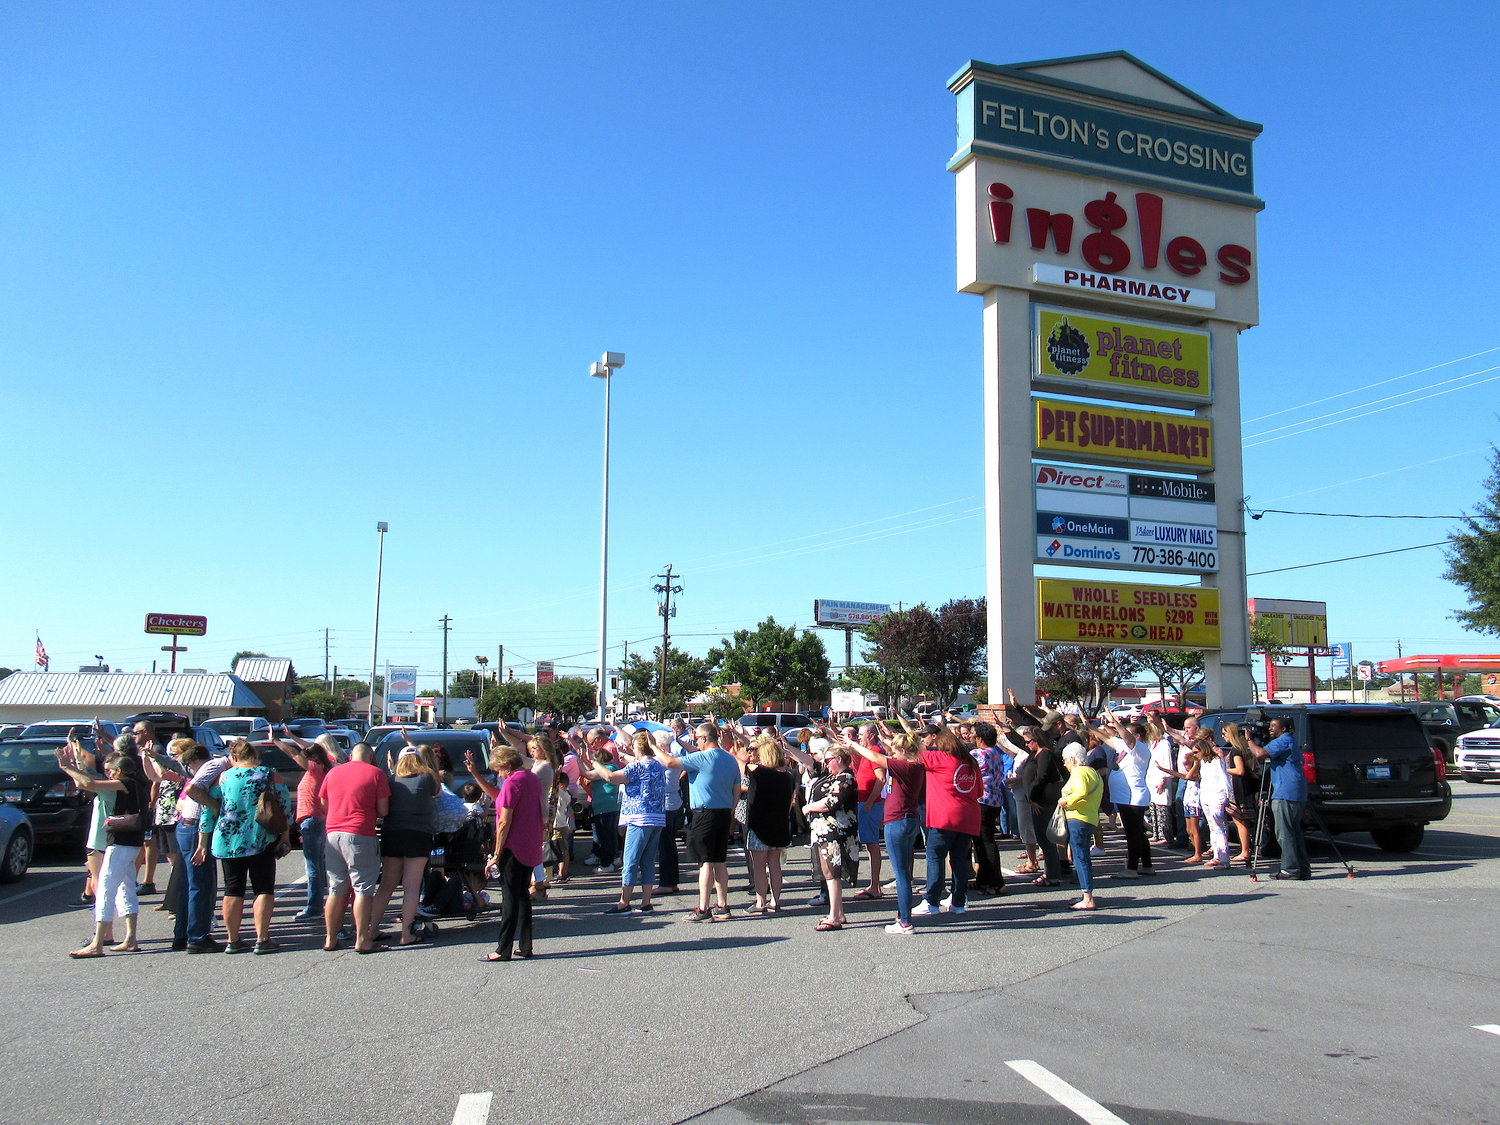 A large crowd turned out Wednesday afternoon to rally behind an Ingles employee allegedly asked to refrain from praying for customers.